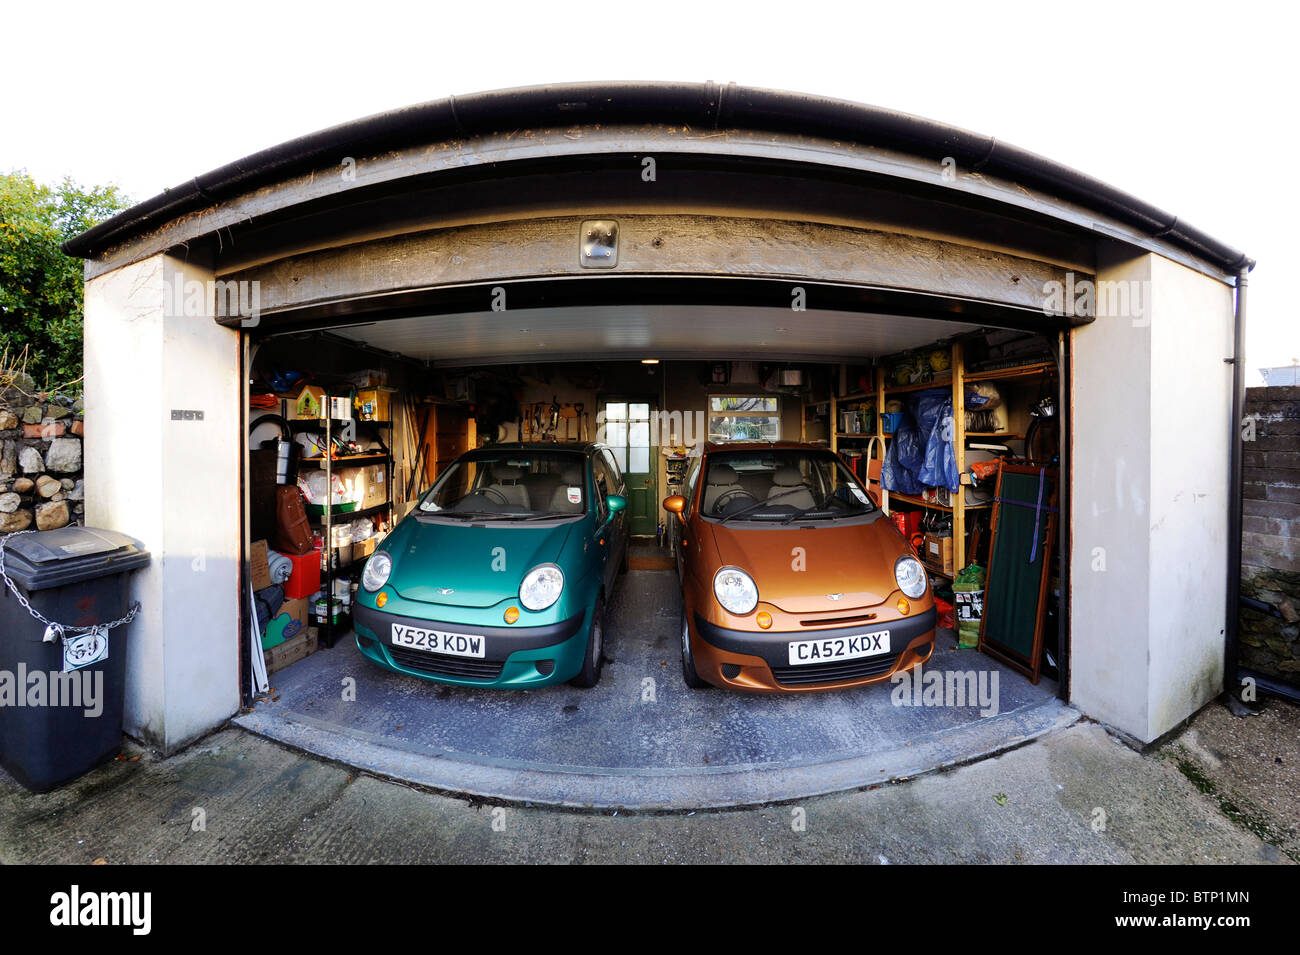 Two small Daewoo Matiz cars parked in domestic double garage Stock